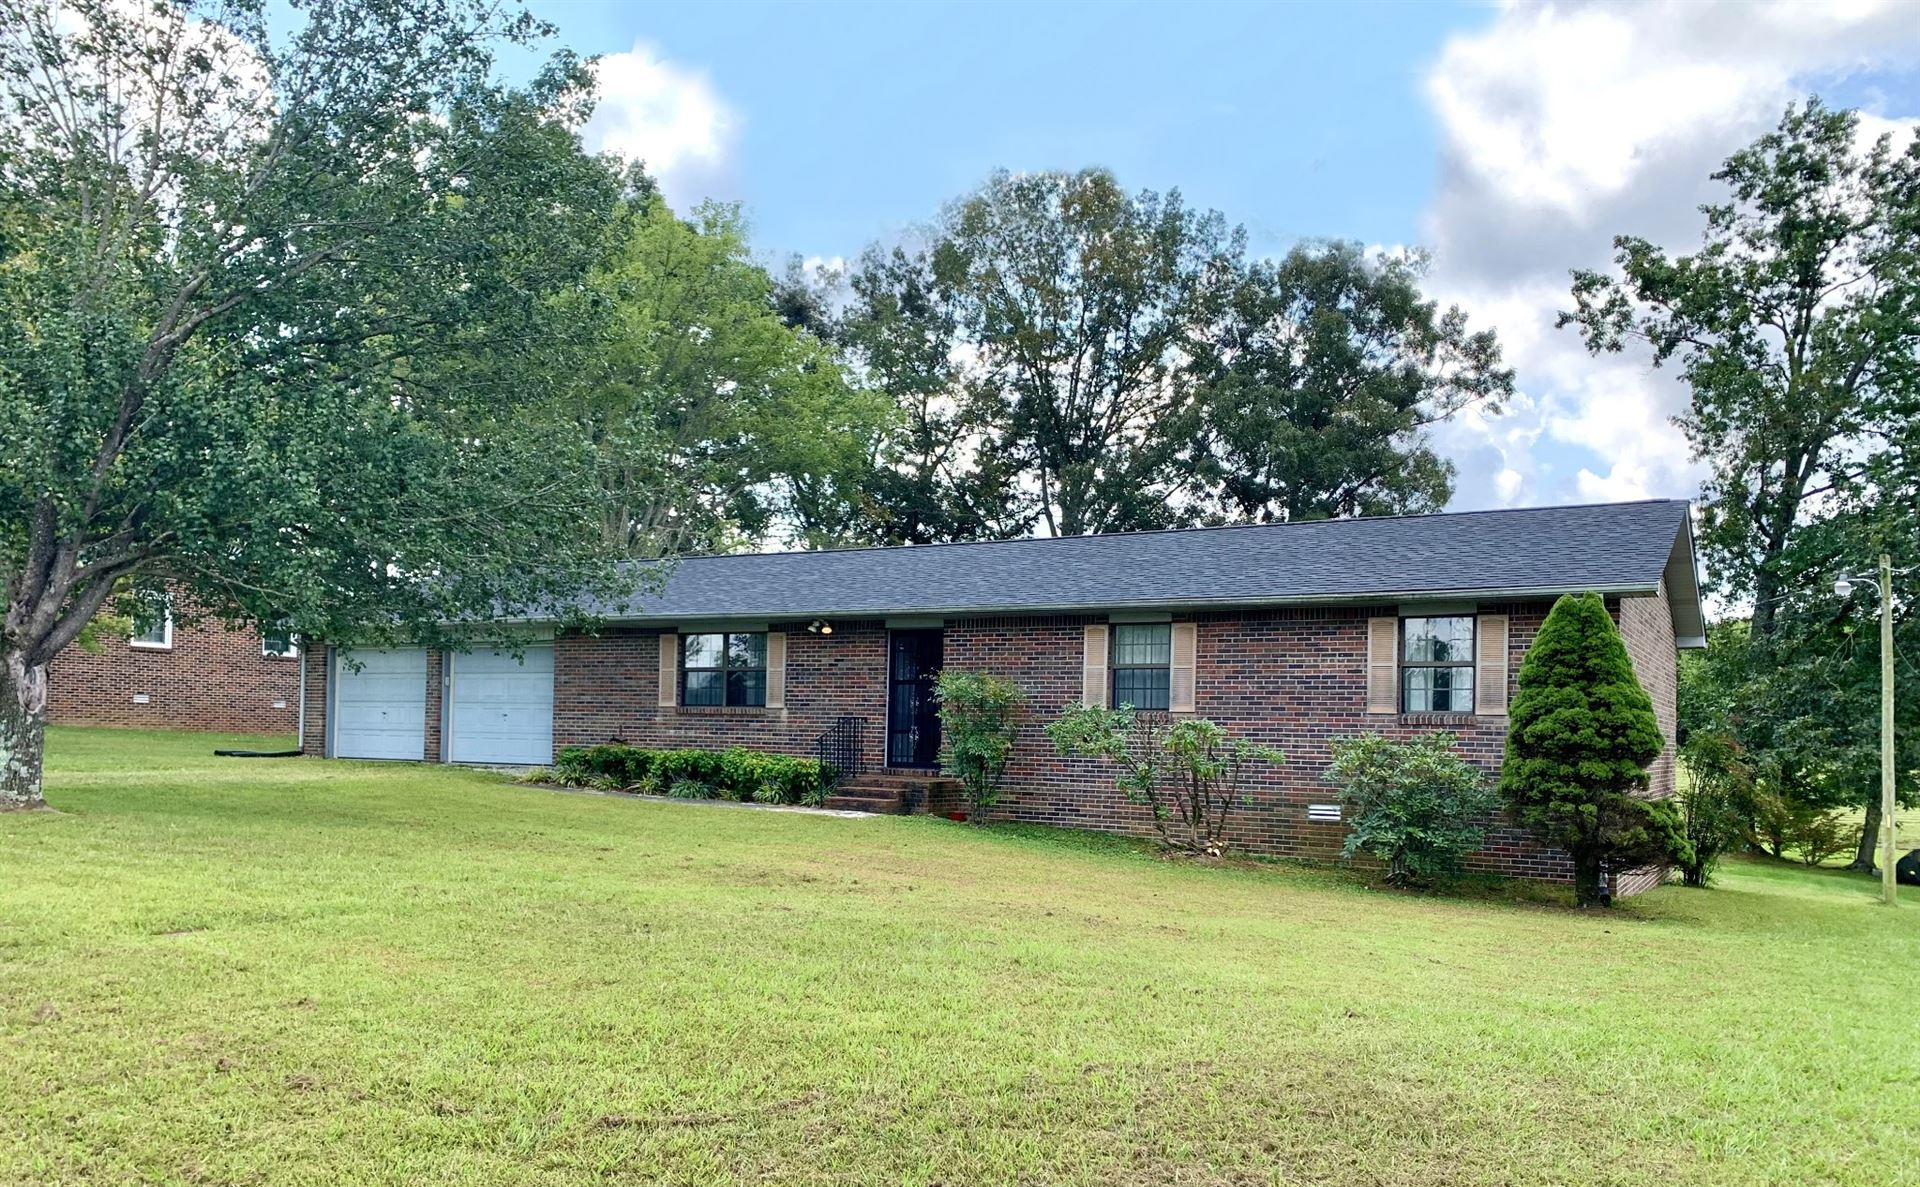 216 South Drive, Cookeville, TN 38501 - MLS#: 2292948